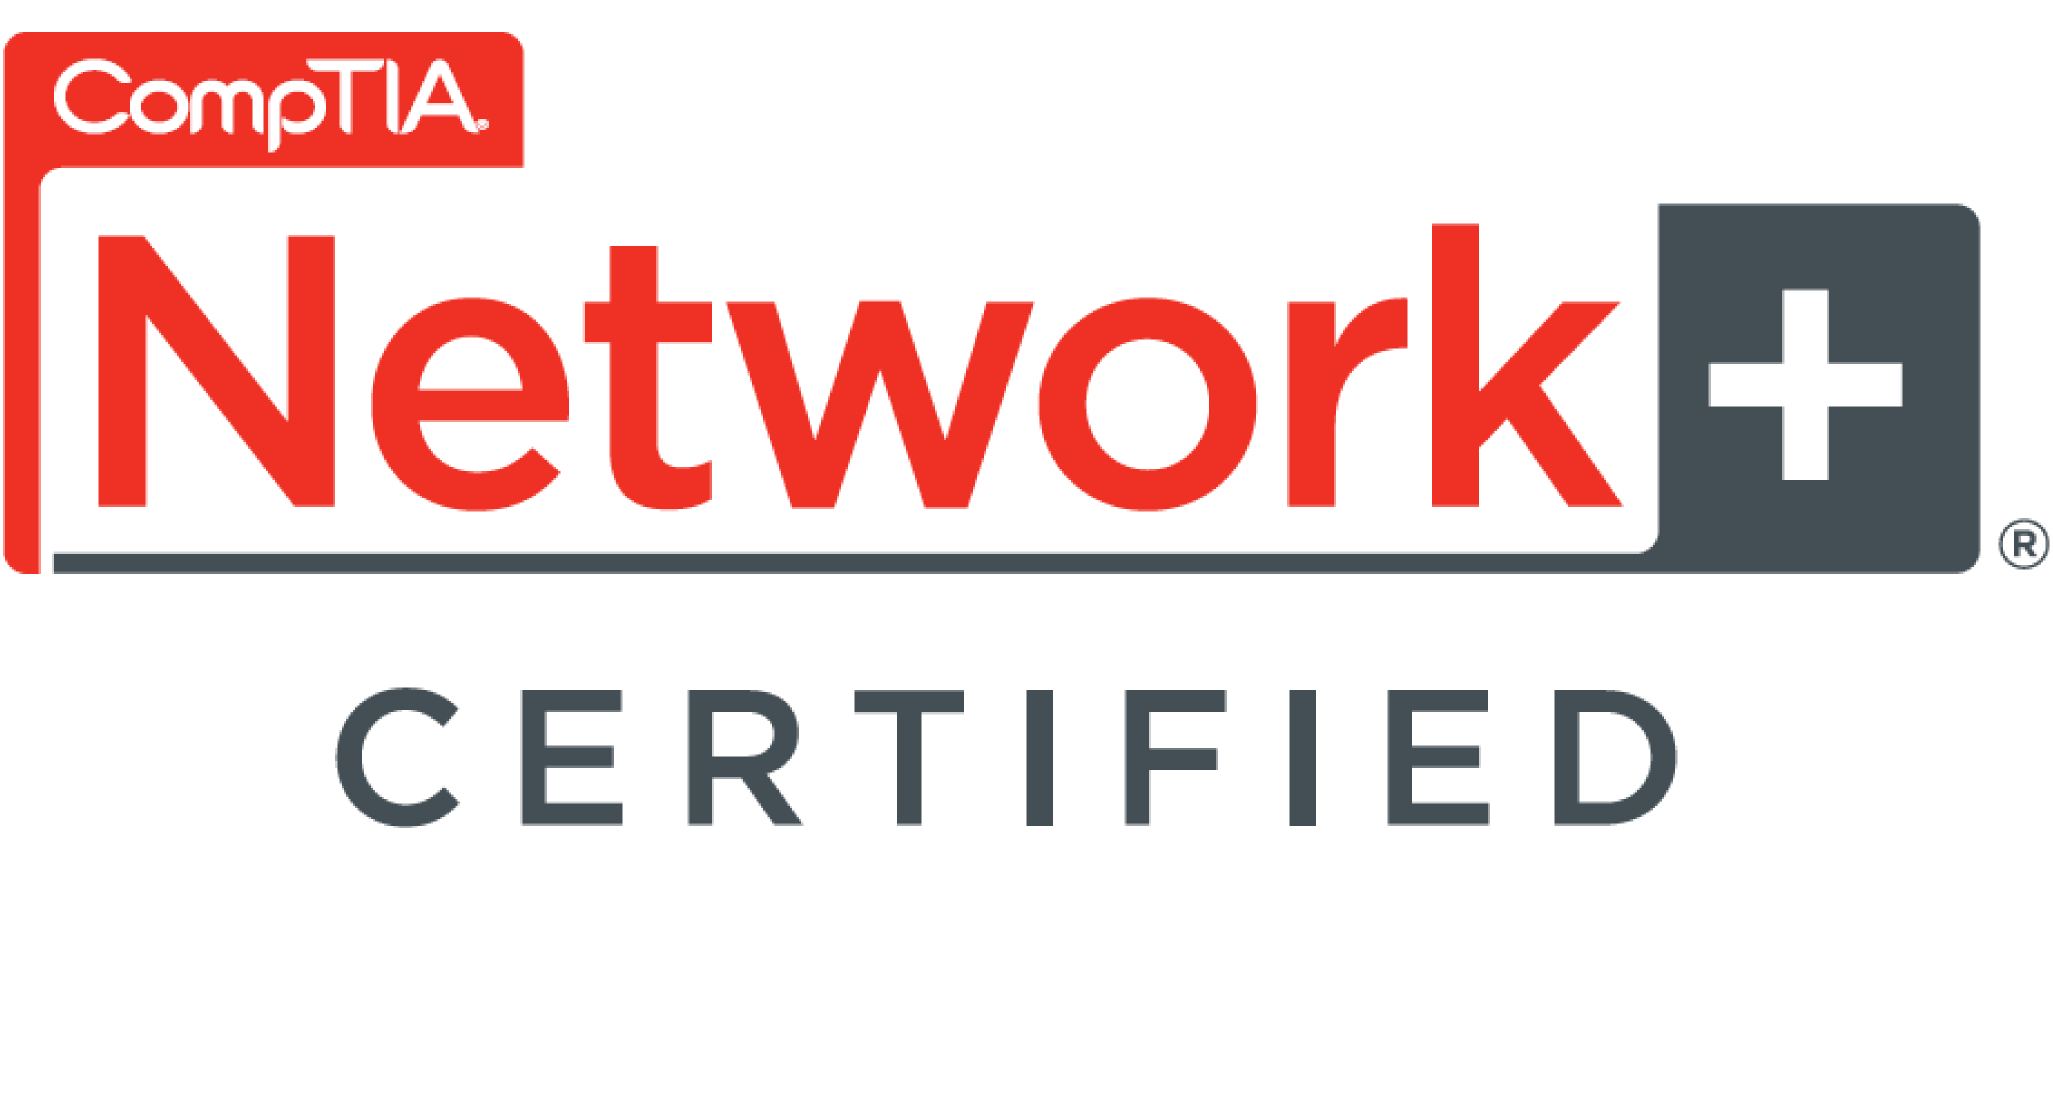 compTIA certified logo